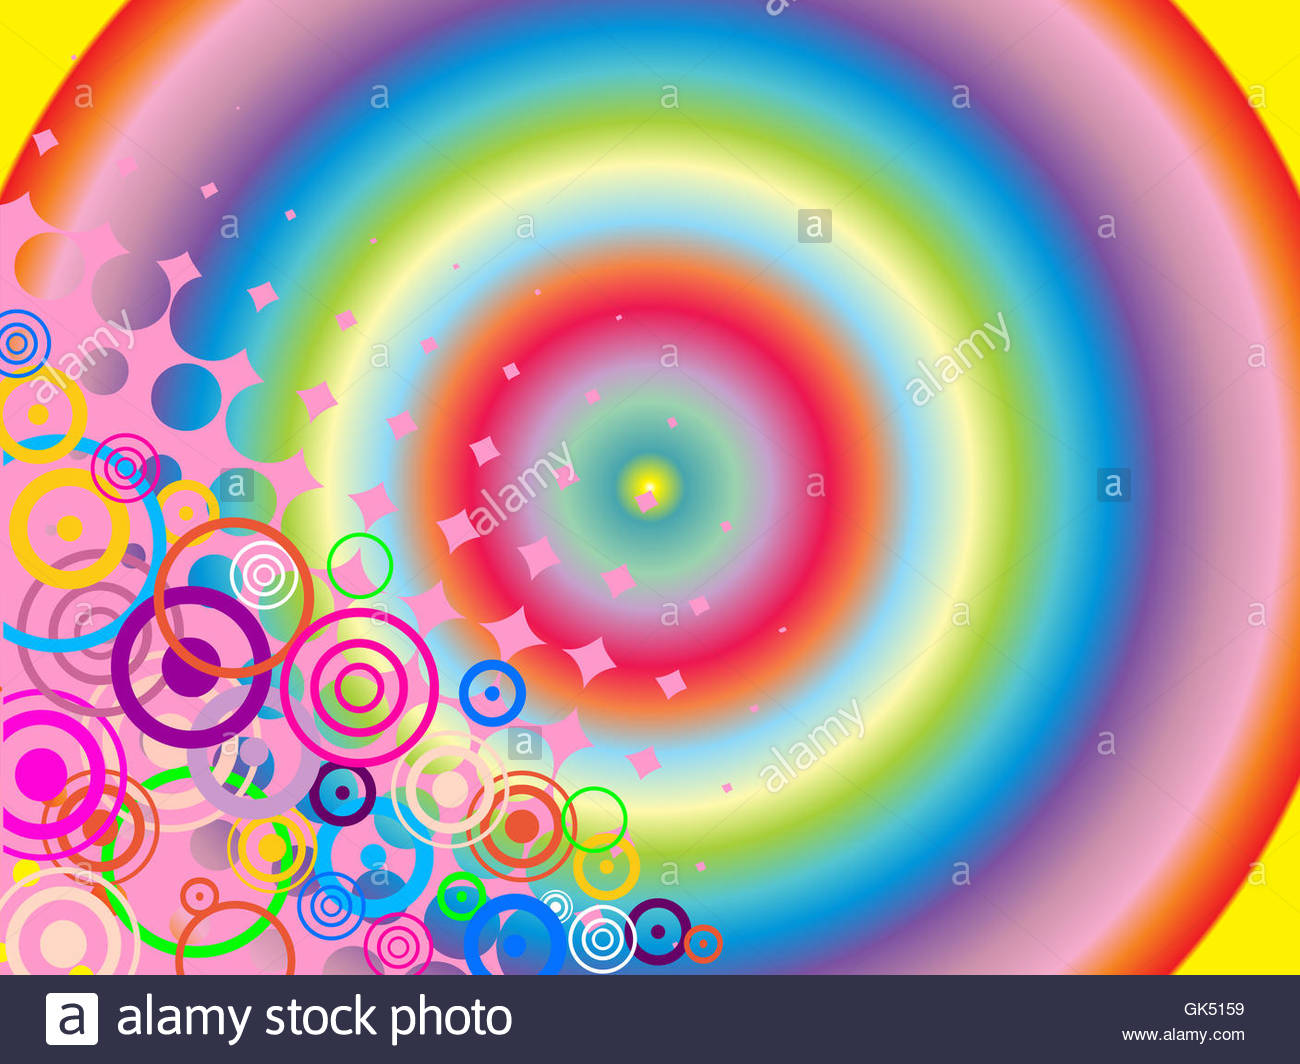 abstract graphic - design - Stock Image